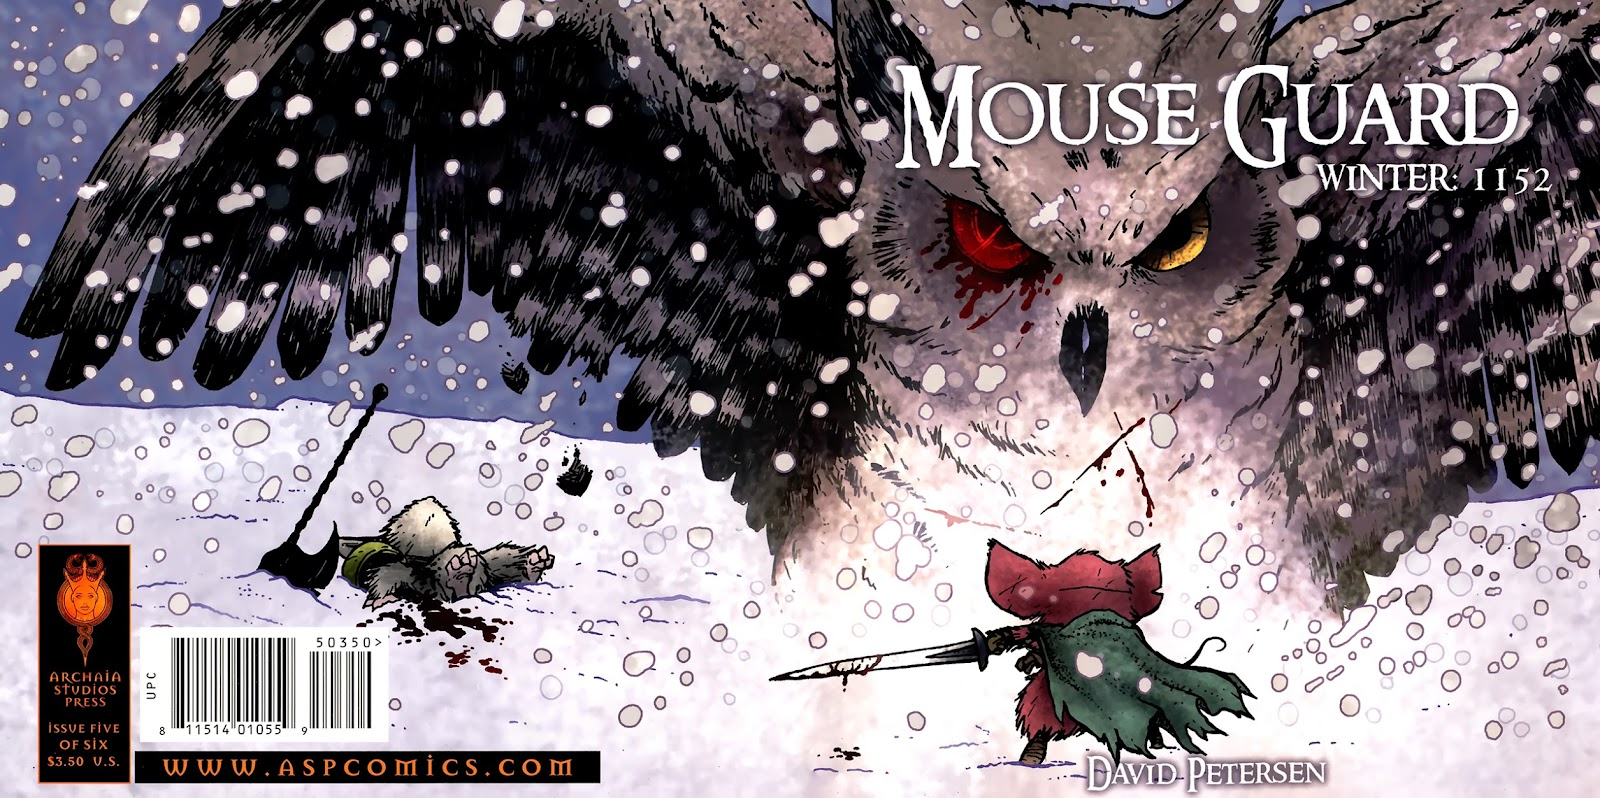 Mouse Guard: Winter 1152 issue 5 - Page 1